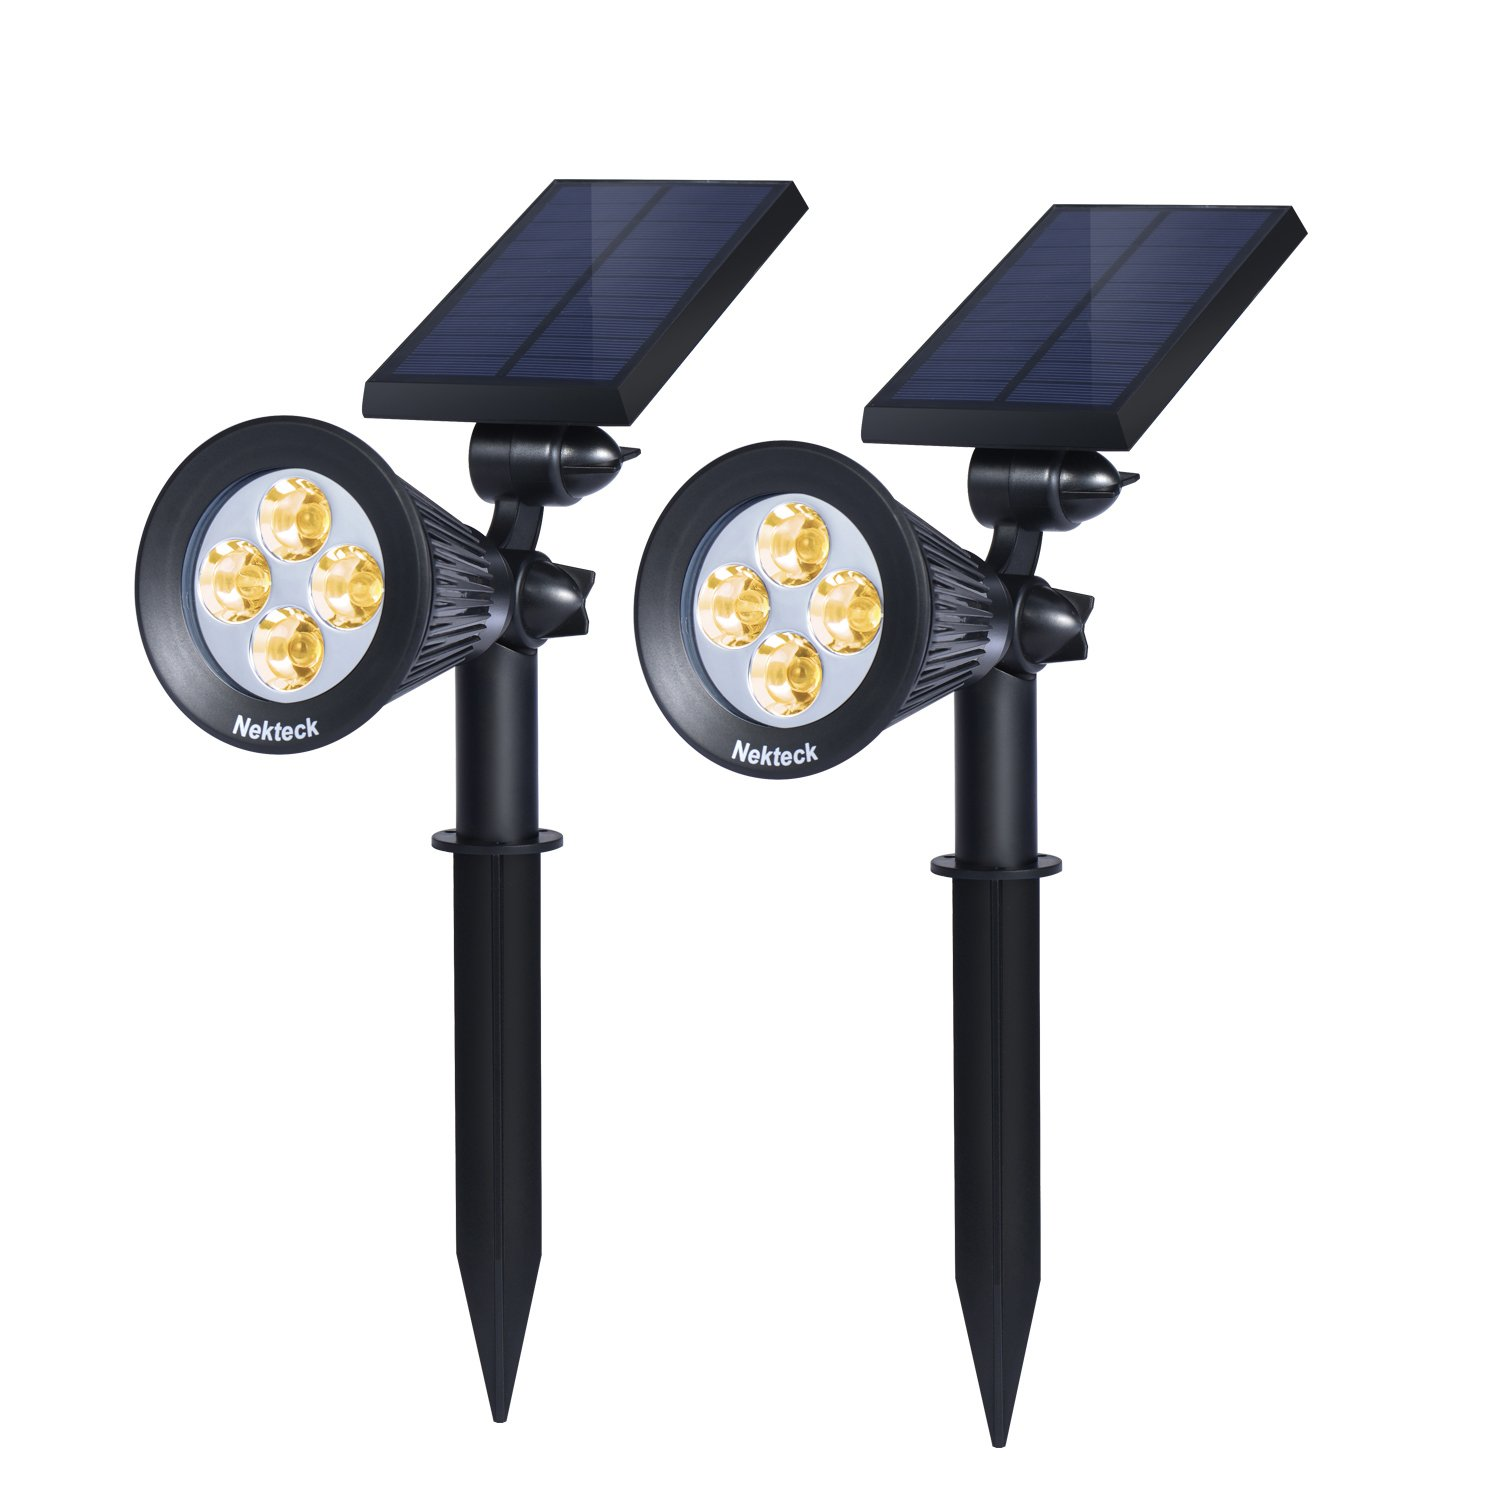 Nekteck Solar Powered Garden Spotlight - Outdoor Spot Light for Walkways, Landscaping, Security, Etc. - Ground or Wall Mount Options (2 Pack, Warm White - 2300K)